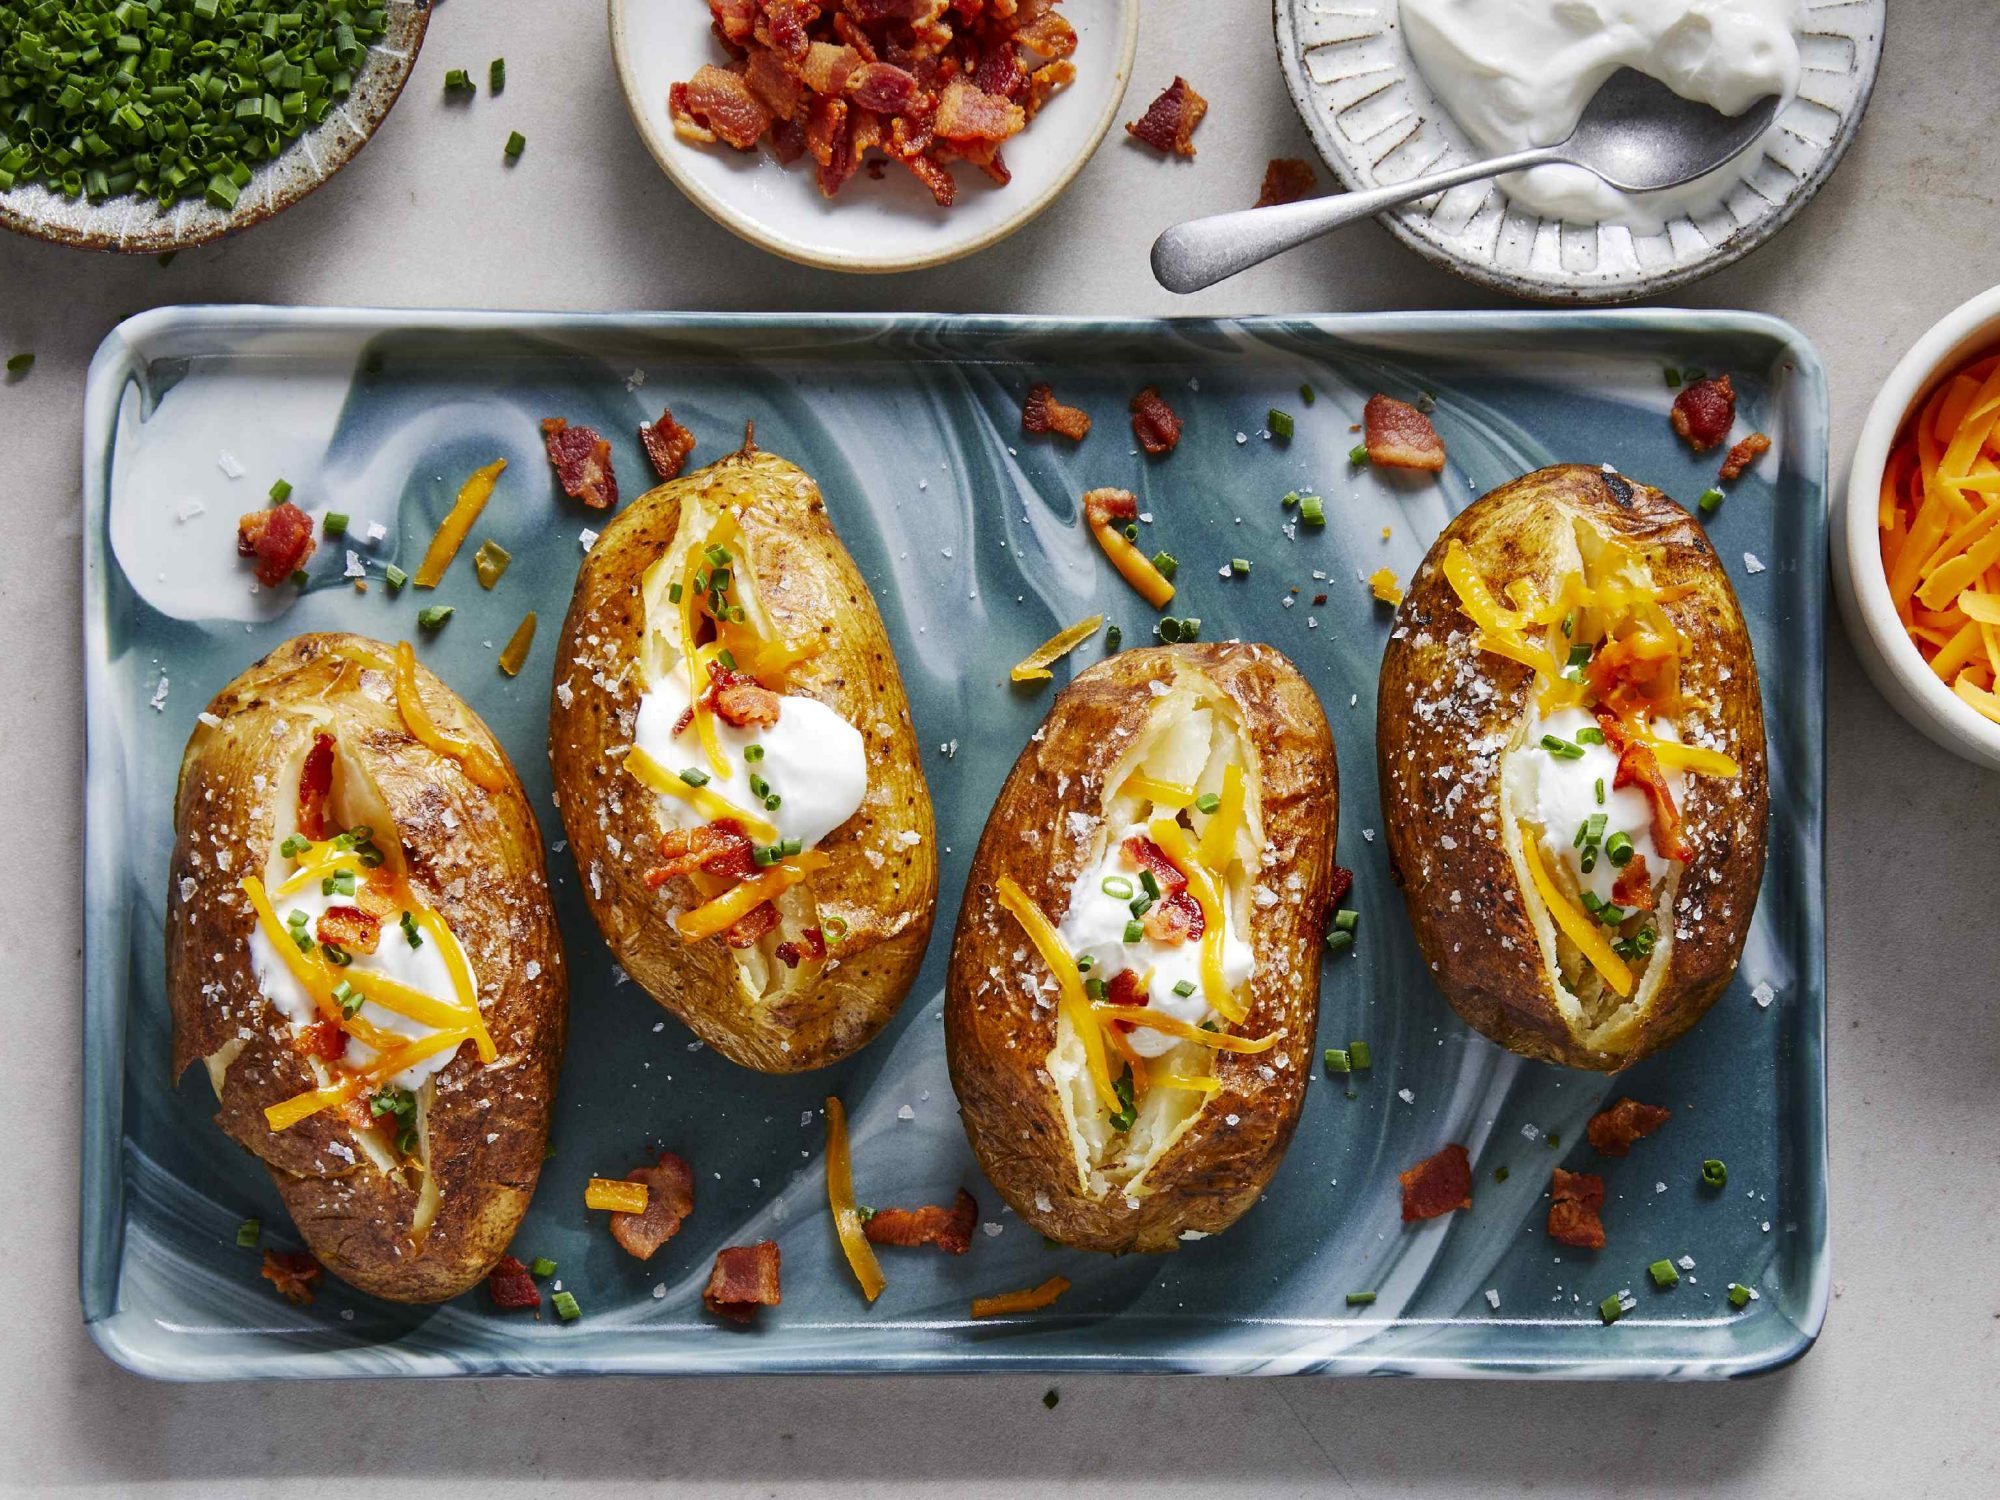 mr - Instant Pot Baked Potatoes Image